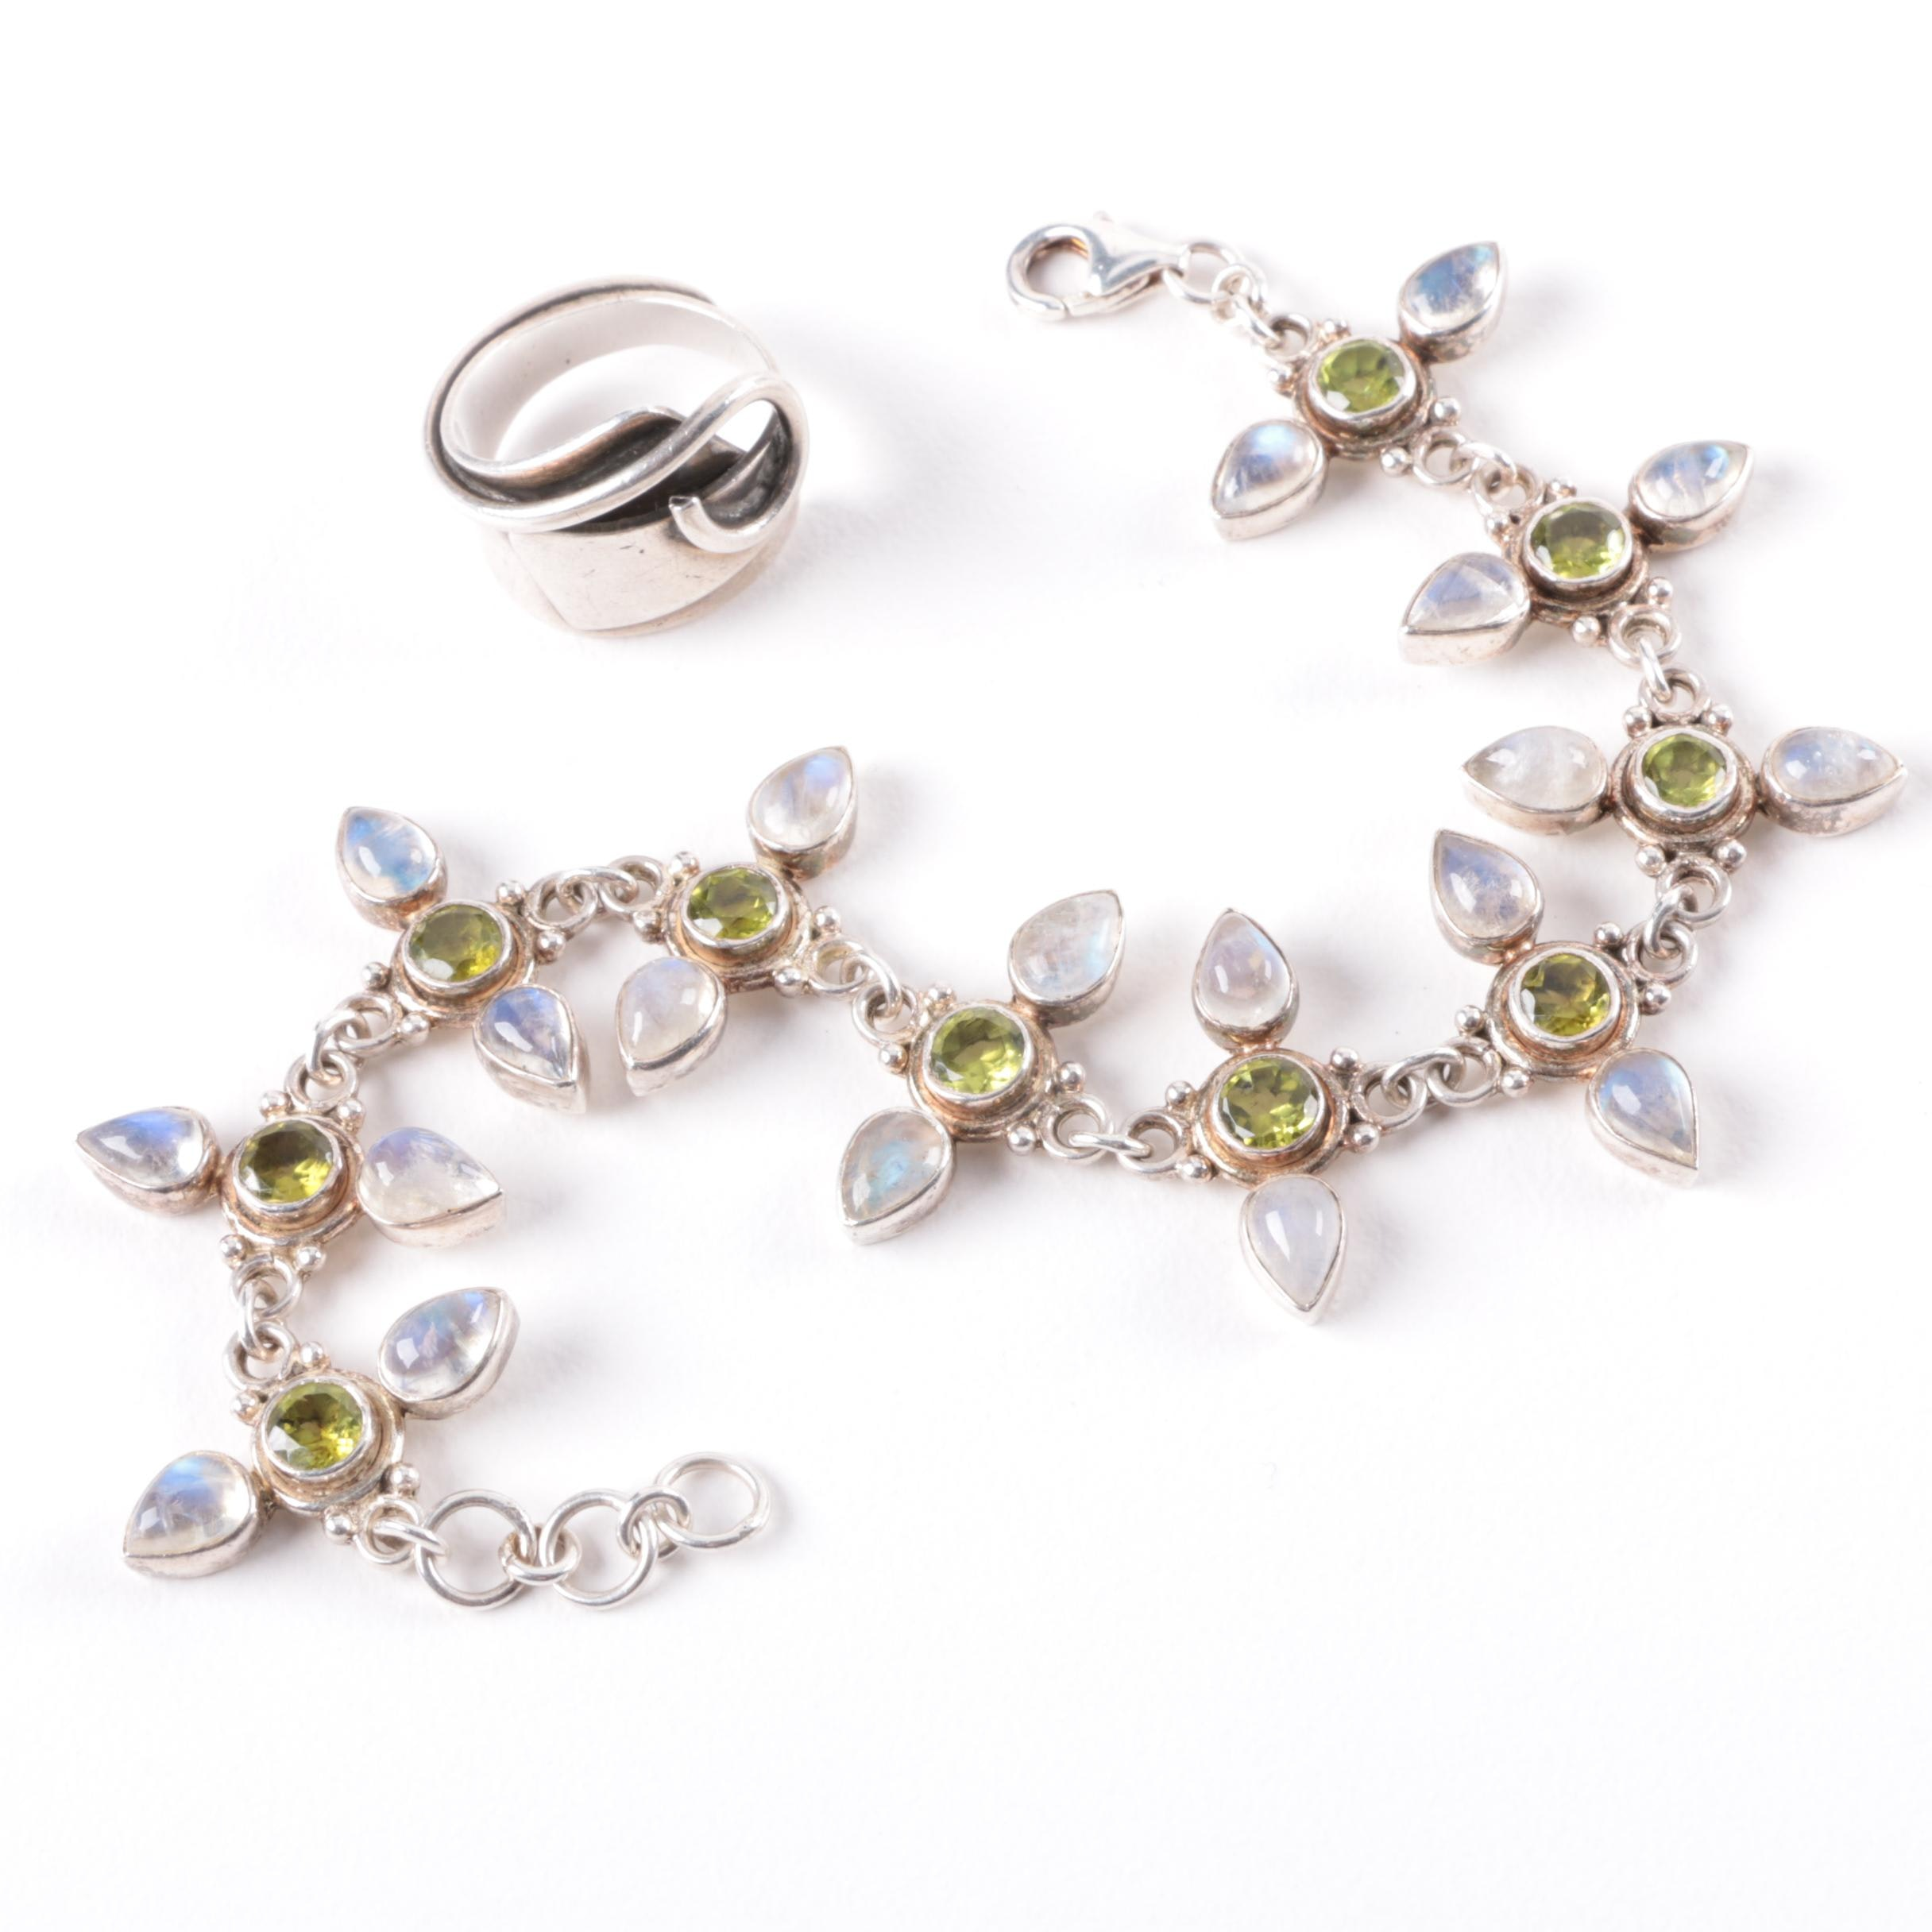 Sajen Sterling Silver, Moonstone and Peridot Bracelet with Bypass Ring